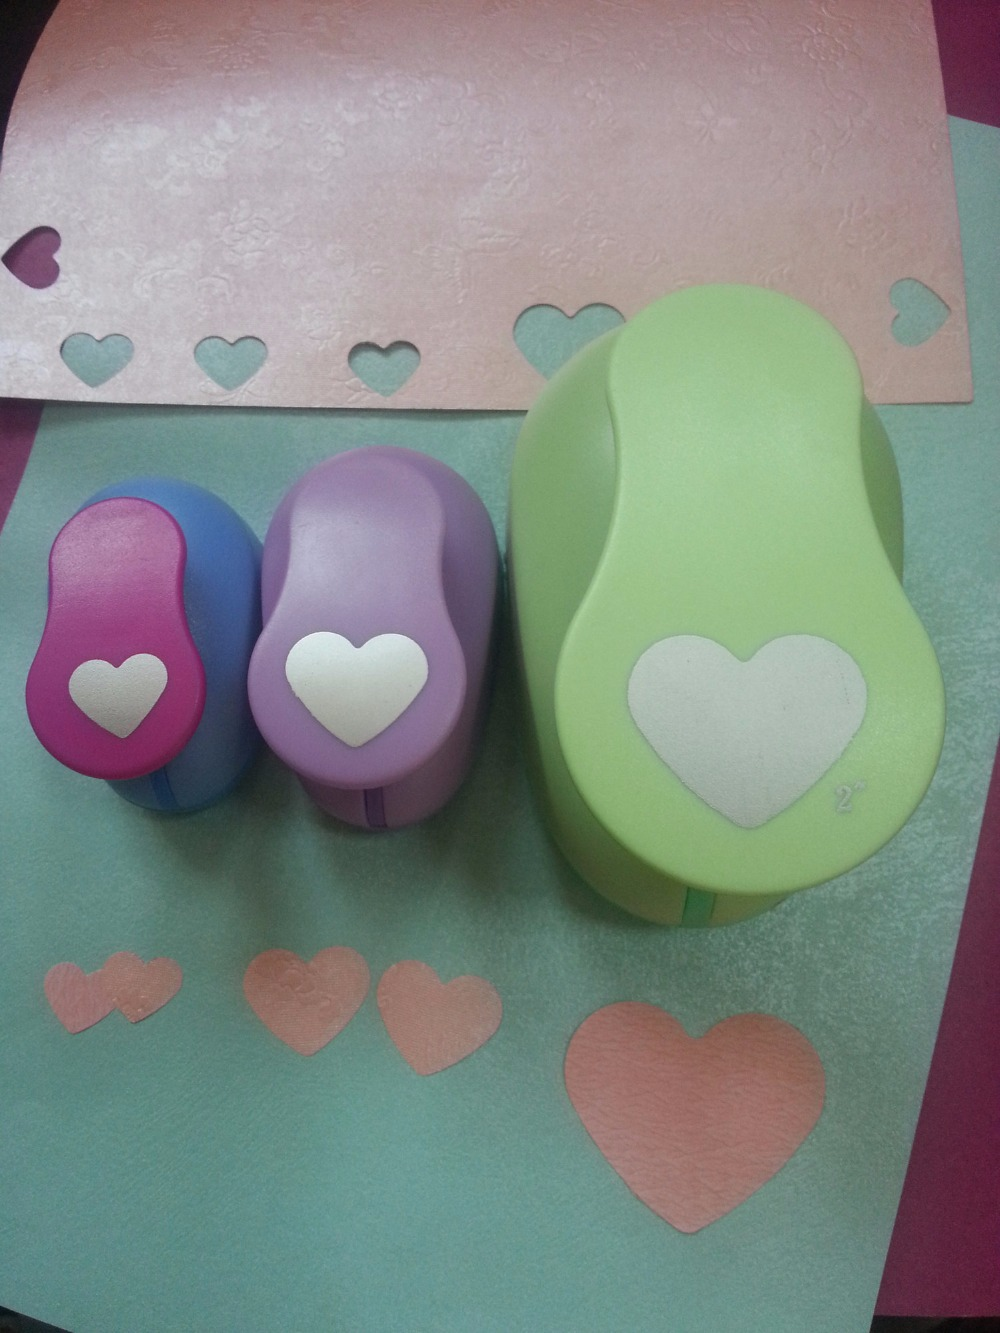 3pcs(5.0cm,2.5cm,1.6cm) heart shape craft punch set Punch Craft Scrapbooking school Paper Puncher eva hole punch free shipping 3pcs 2 5cm maple butterfly heart shape craft punch punch craft scrapbooking school paper puncher eva hole punch free shipping